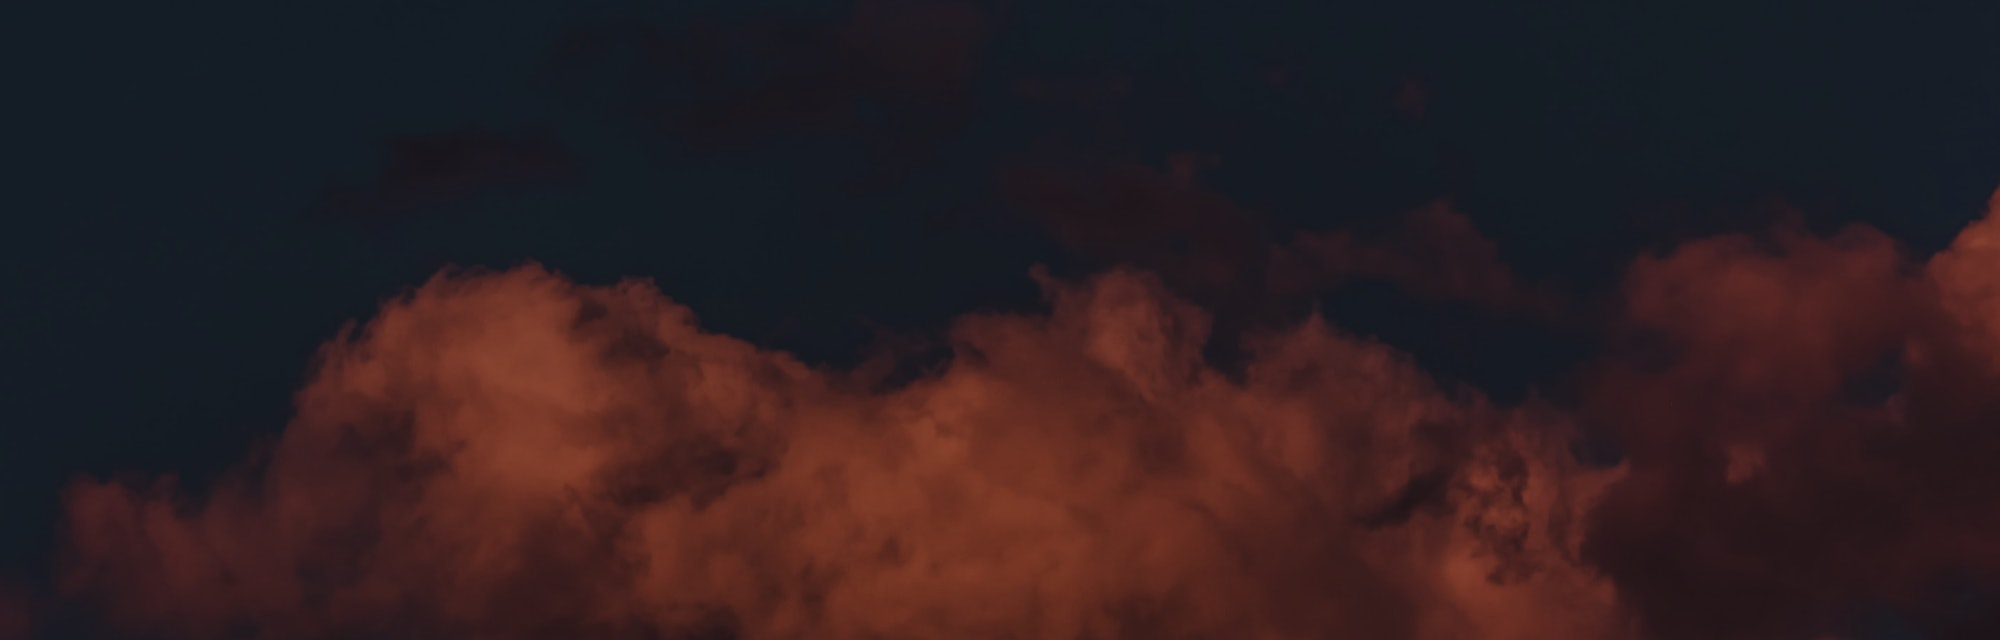 The full moon above pink clouds